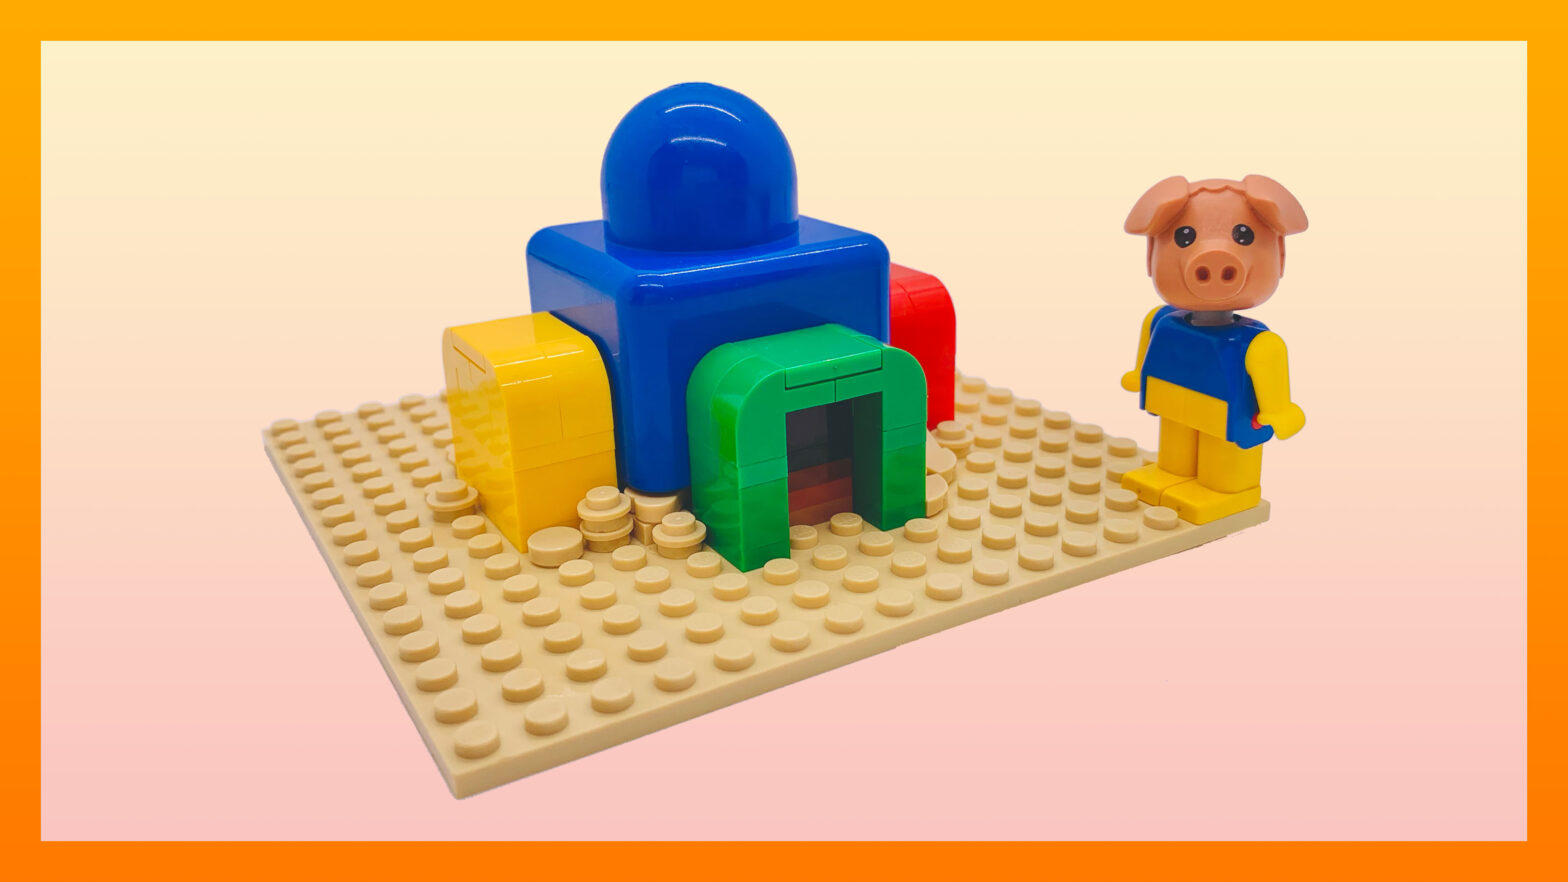 Pig minifigure standing next to a large blue Primo brick surrounded by yellow, red and green System extensions.